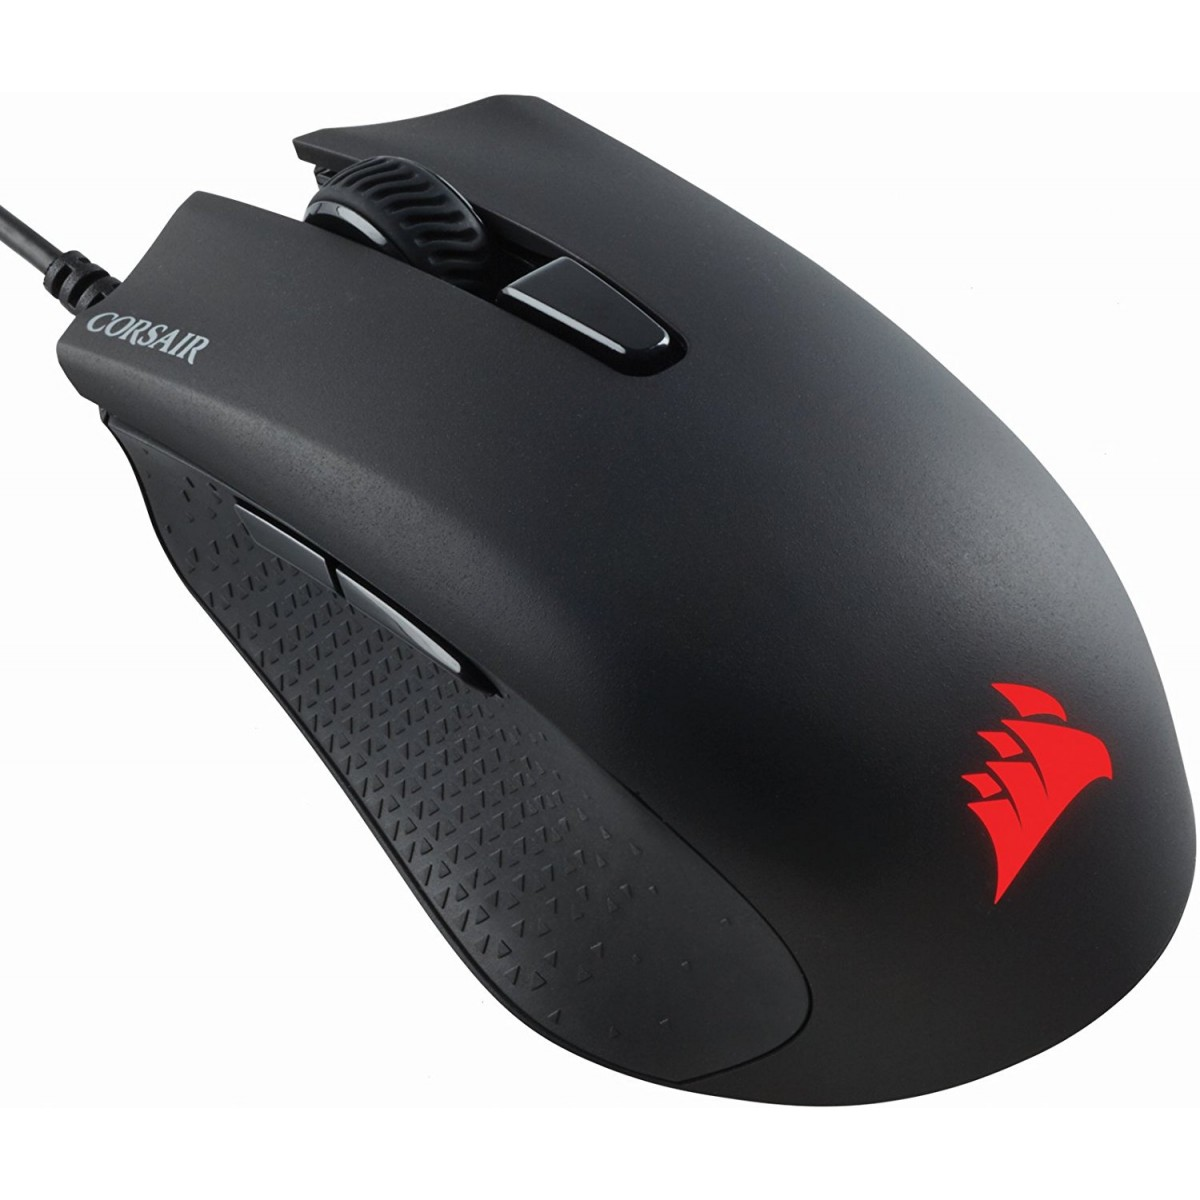 CORSAIR Harpoon RGB FPS Gaming Mouse